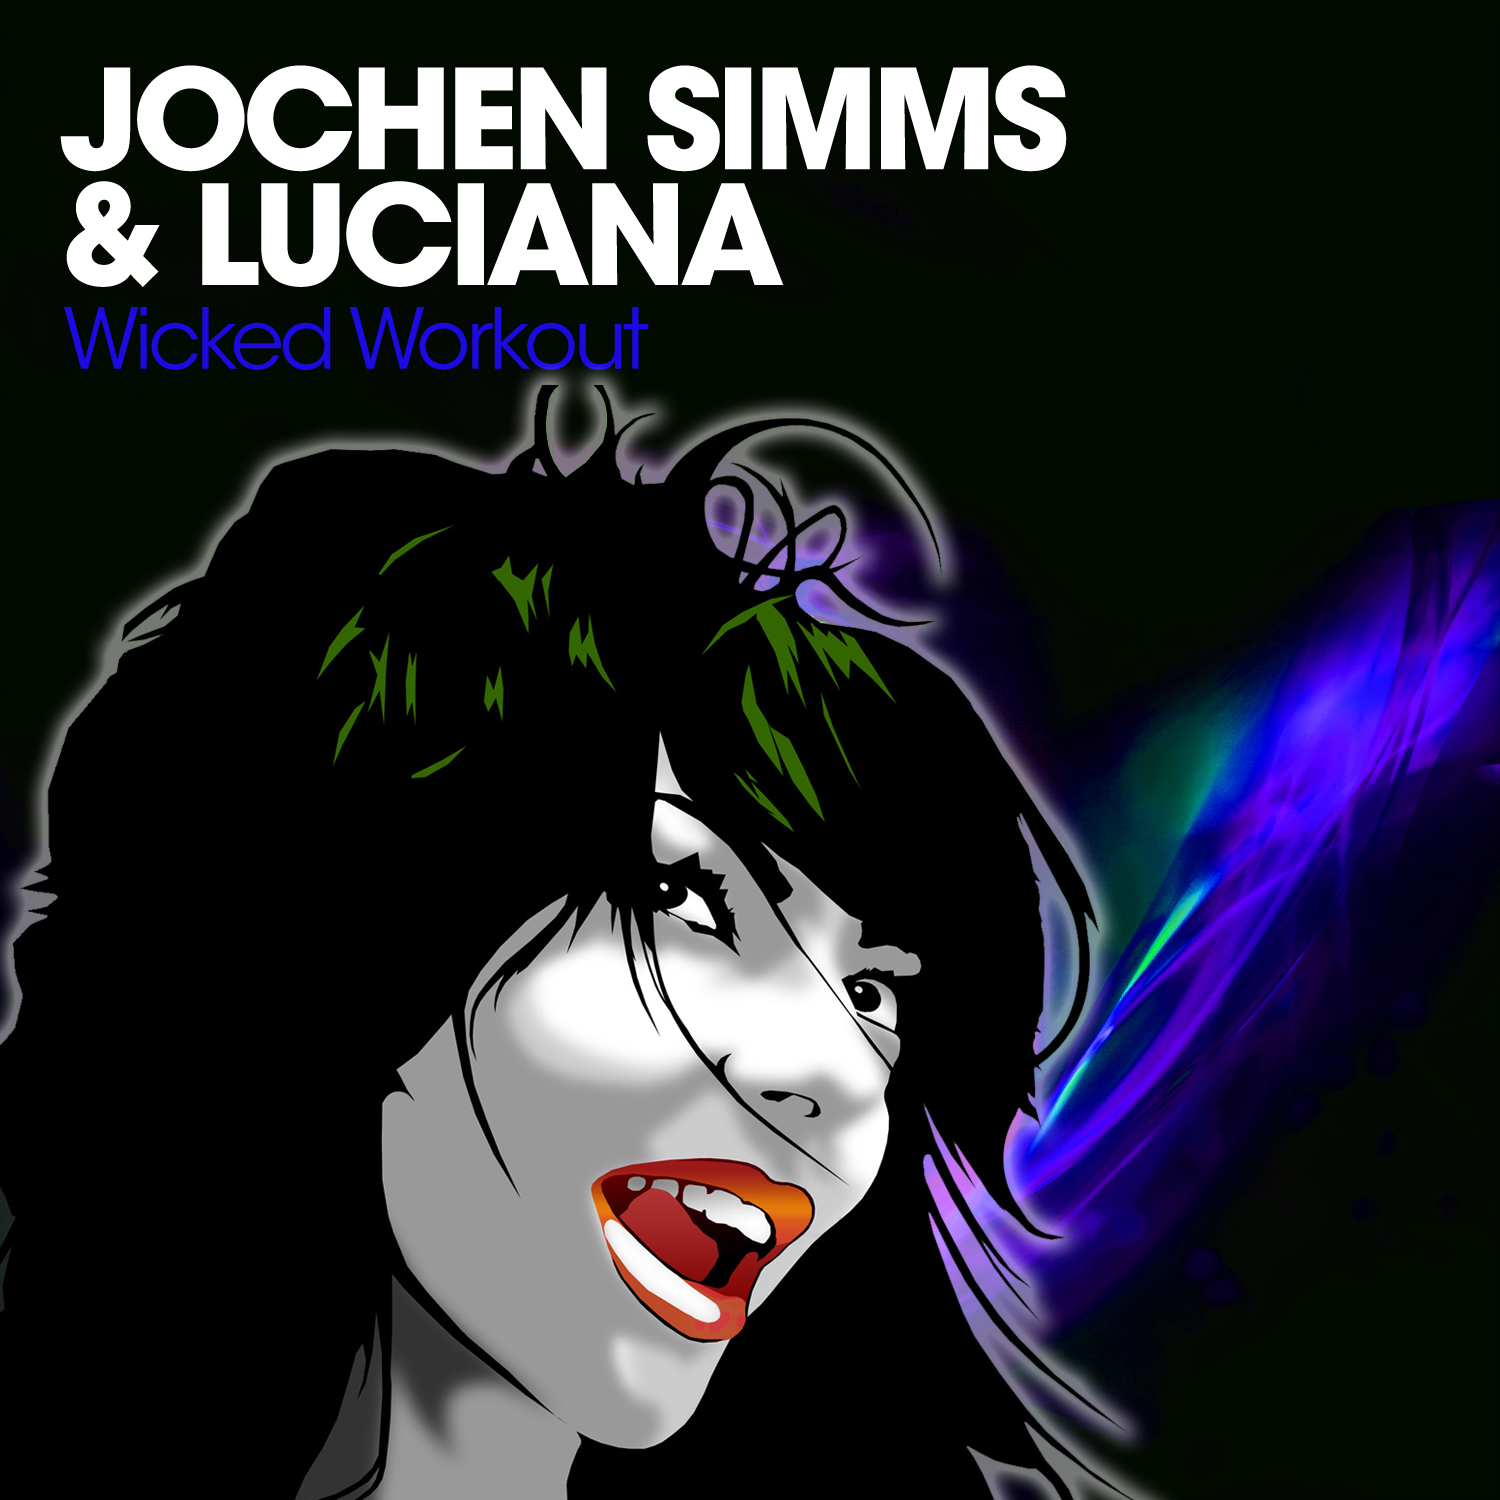 Jochen Simms & Luciana - Wicked Workout [Preview]